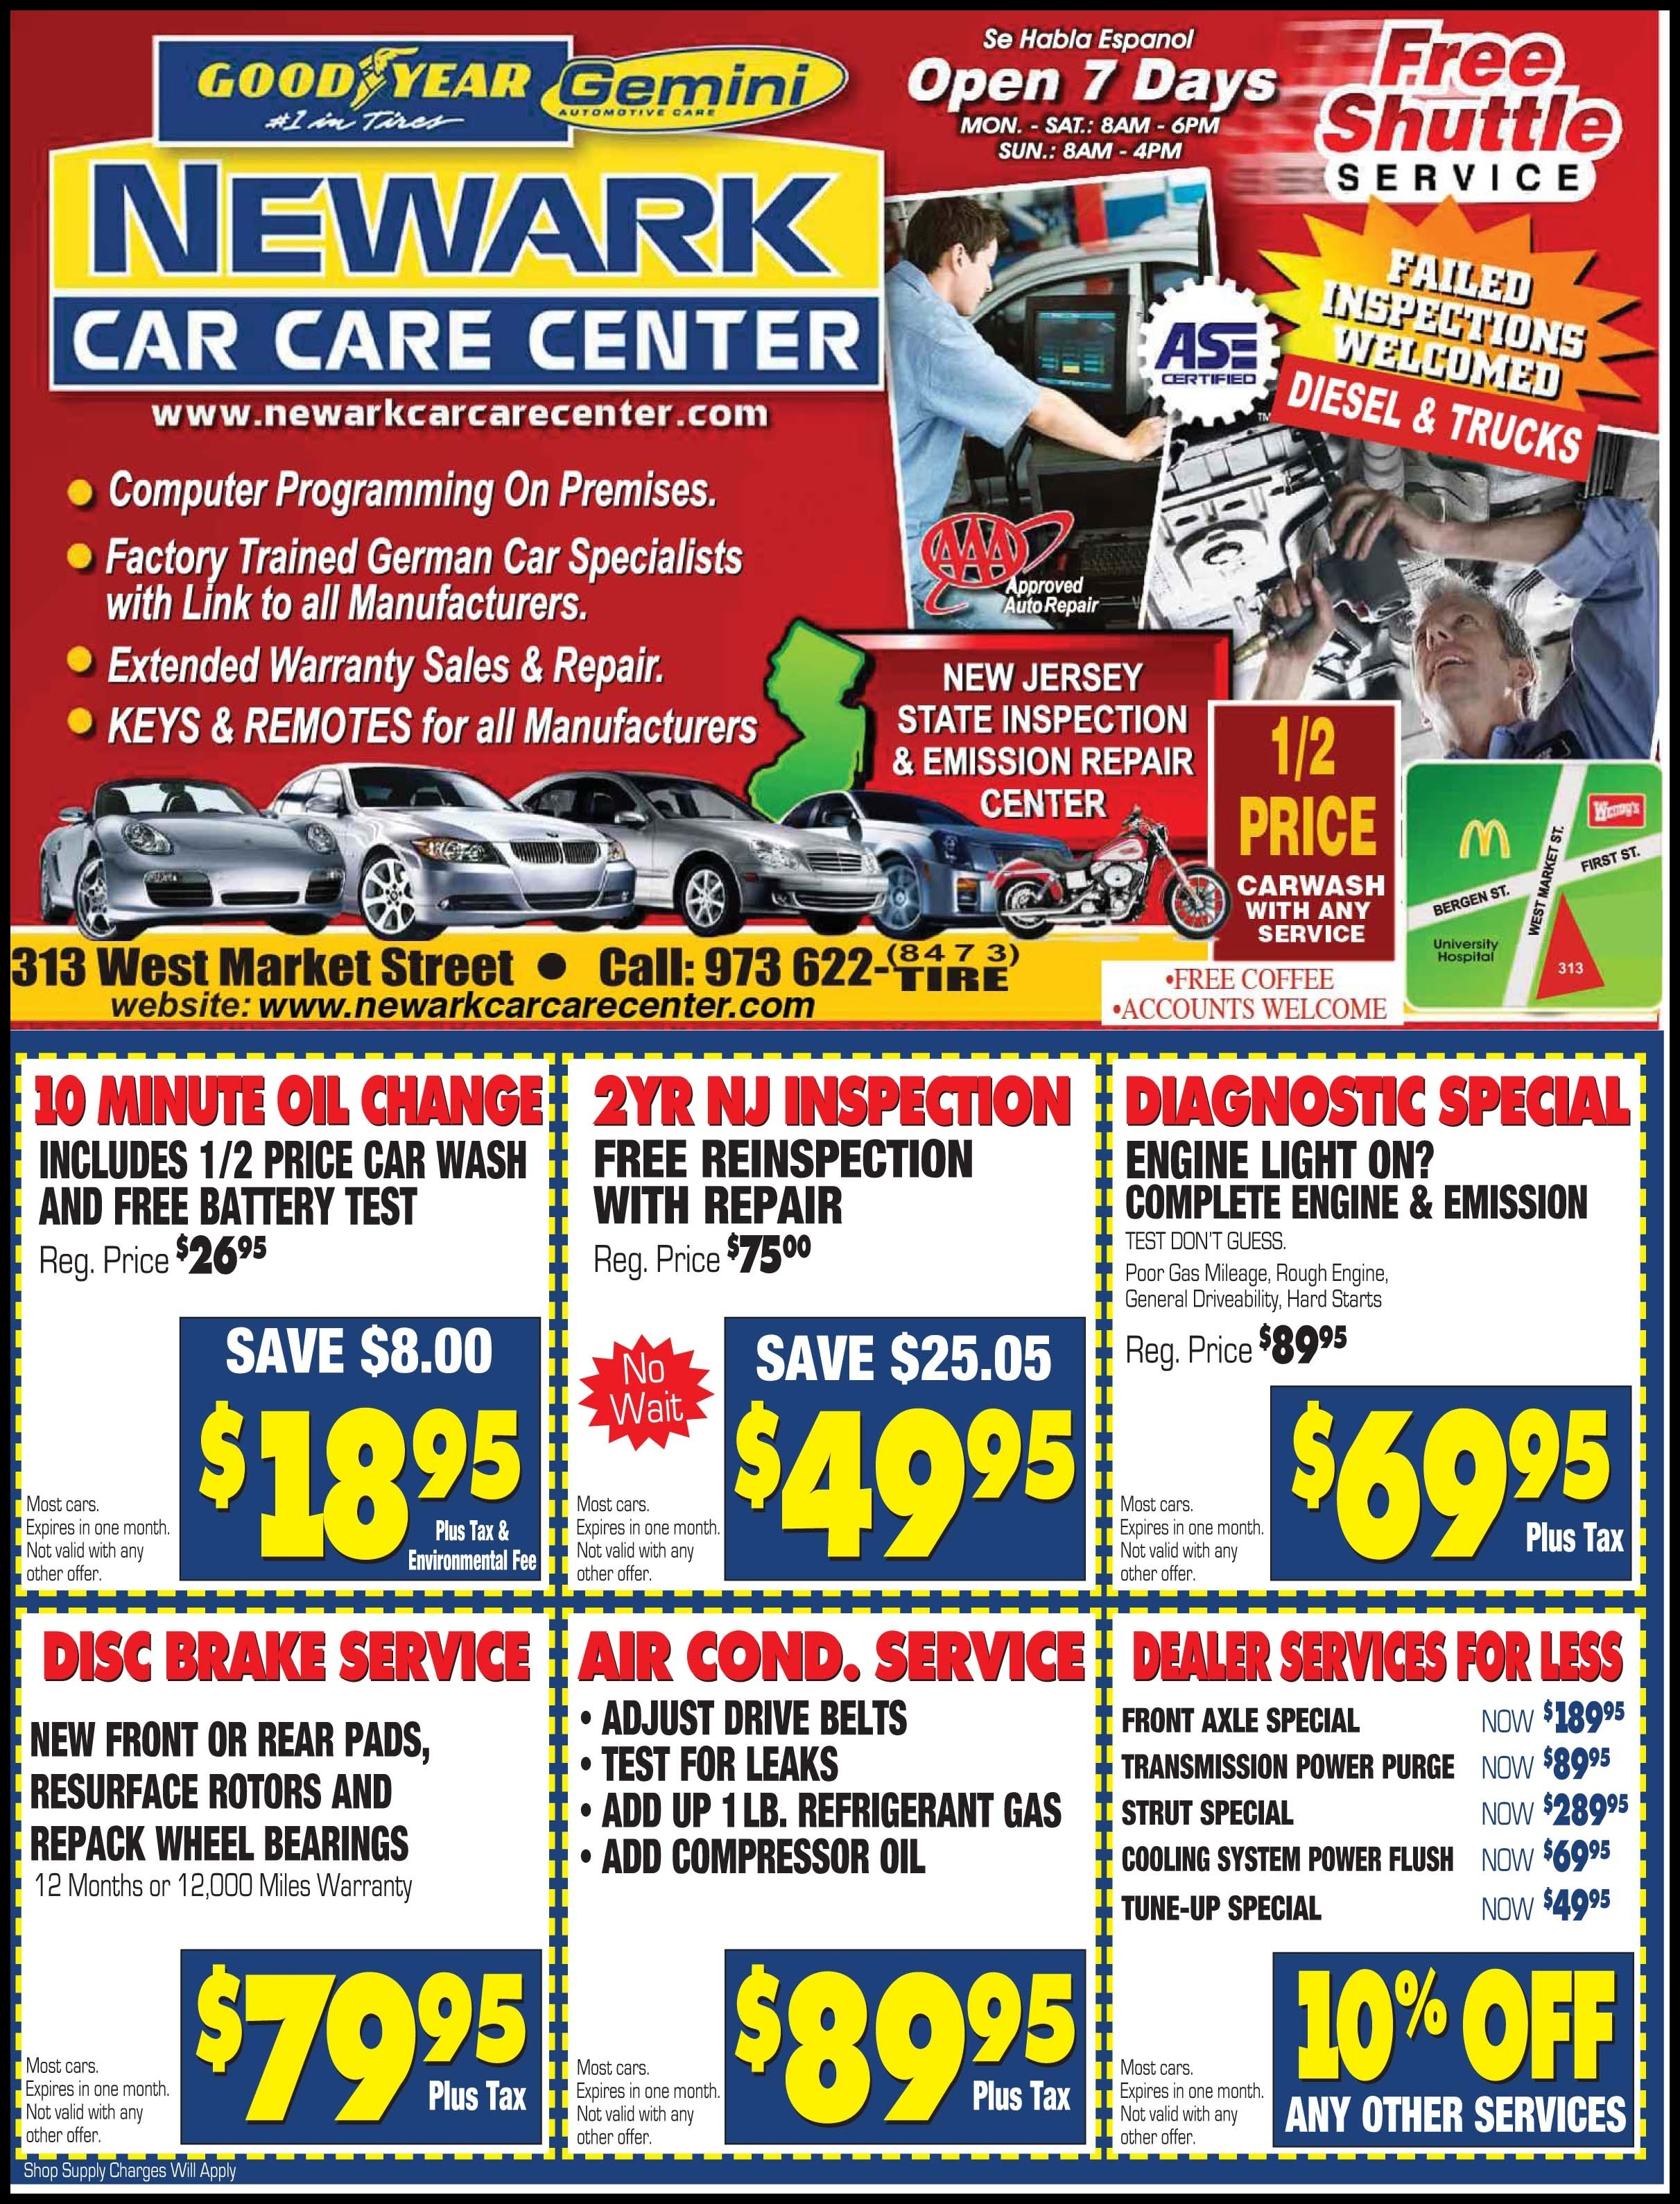 Toyota Service Coupons Printable Unique Goodyear Oil Change Coupons 2018 2019 New Car Reviews by